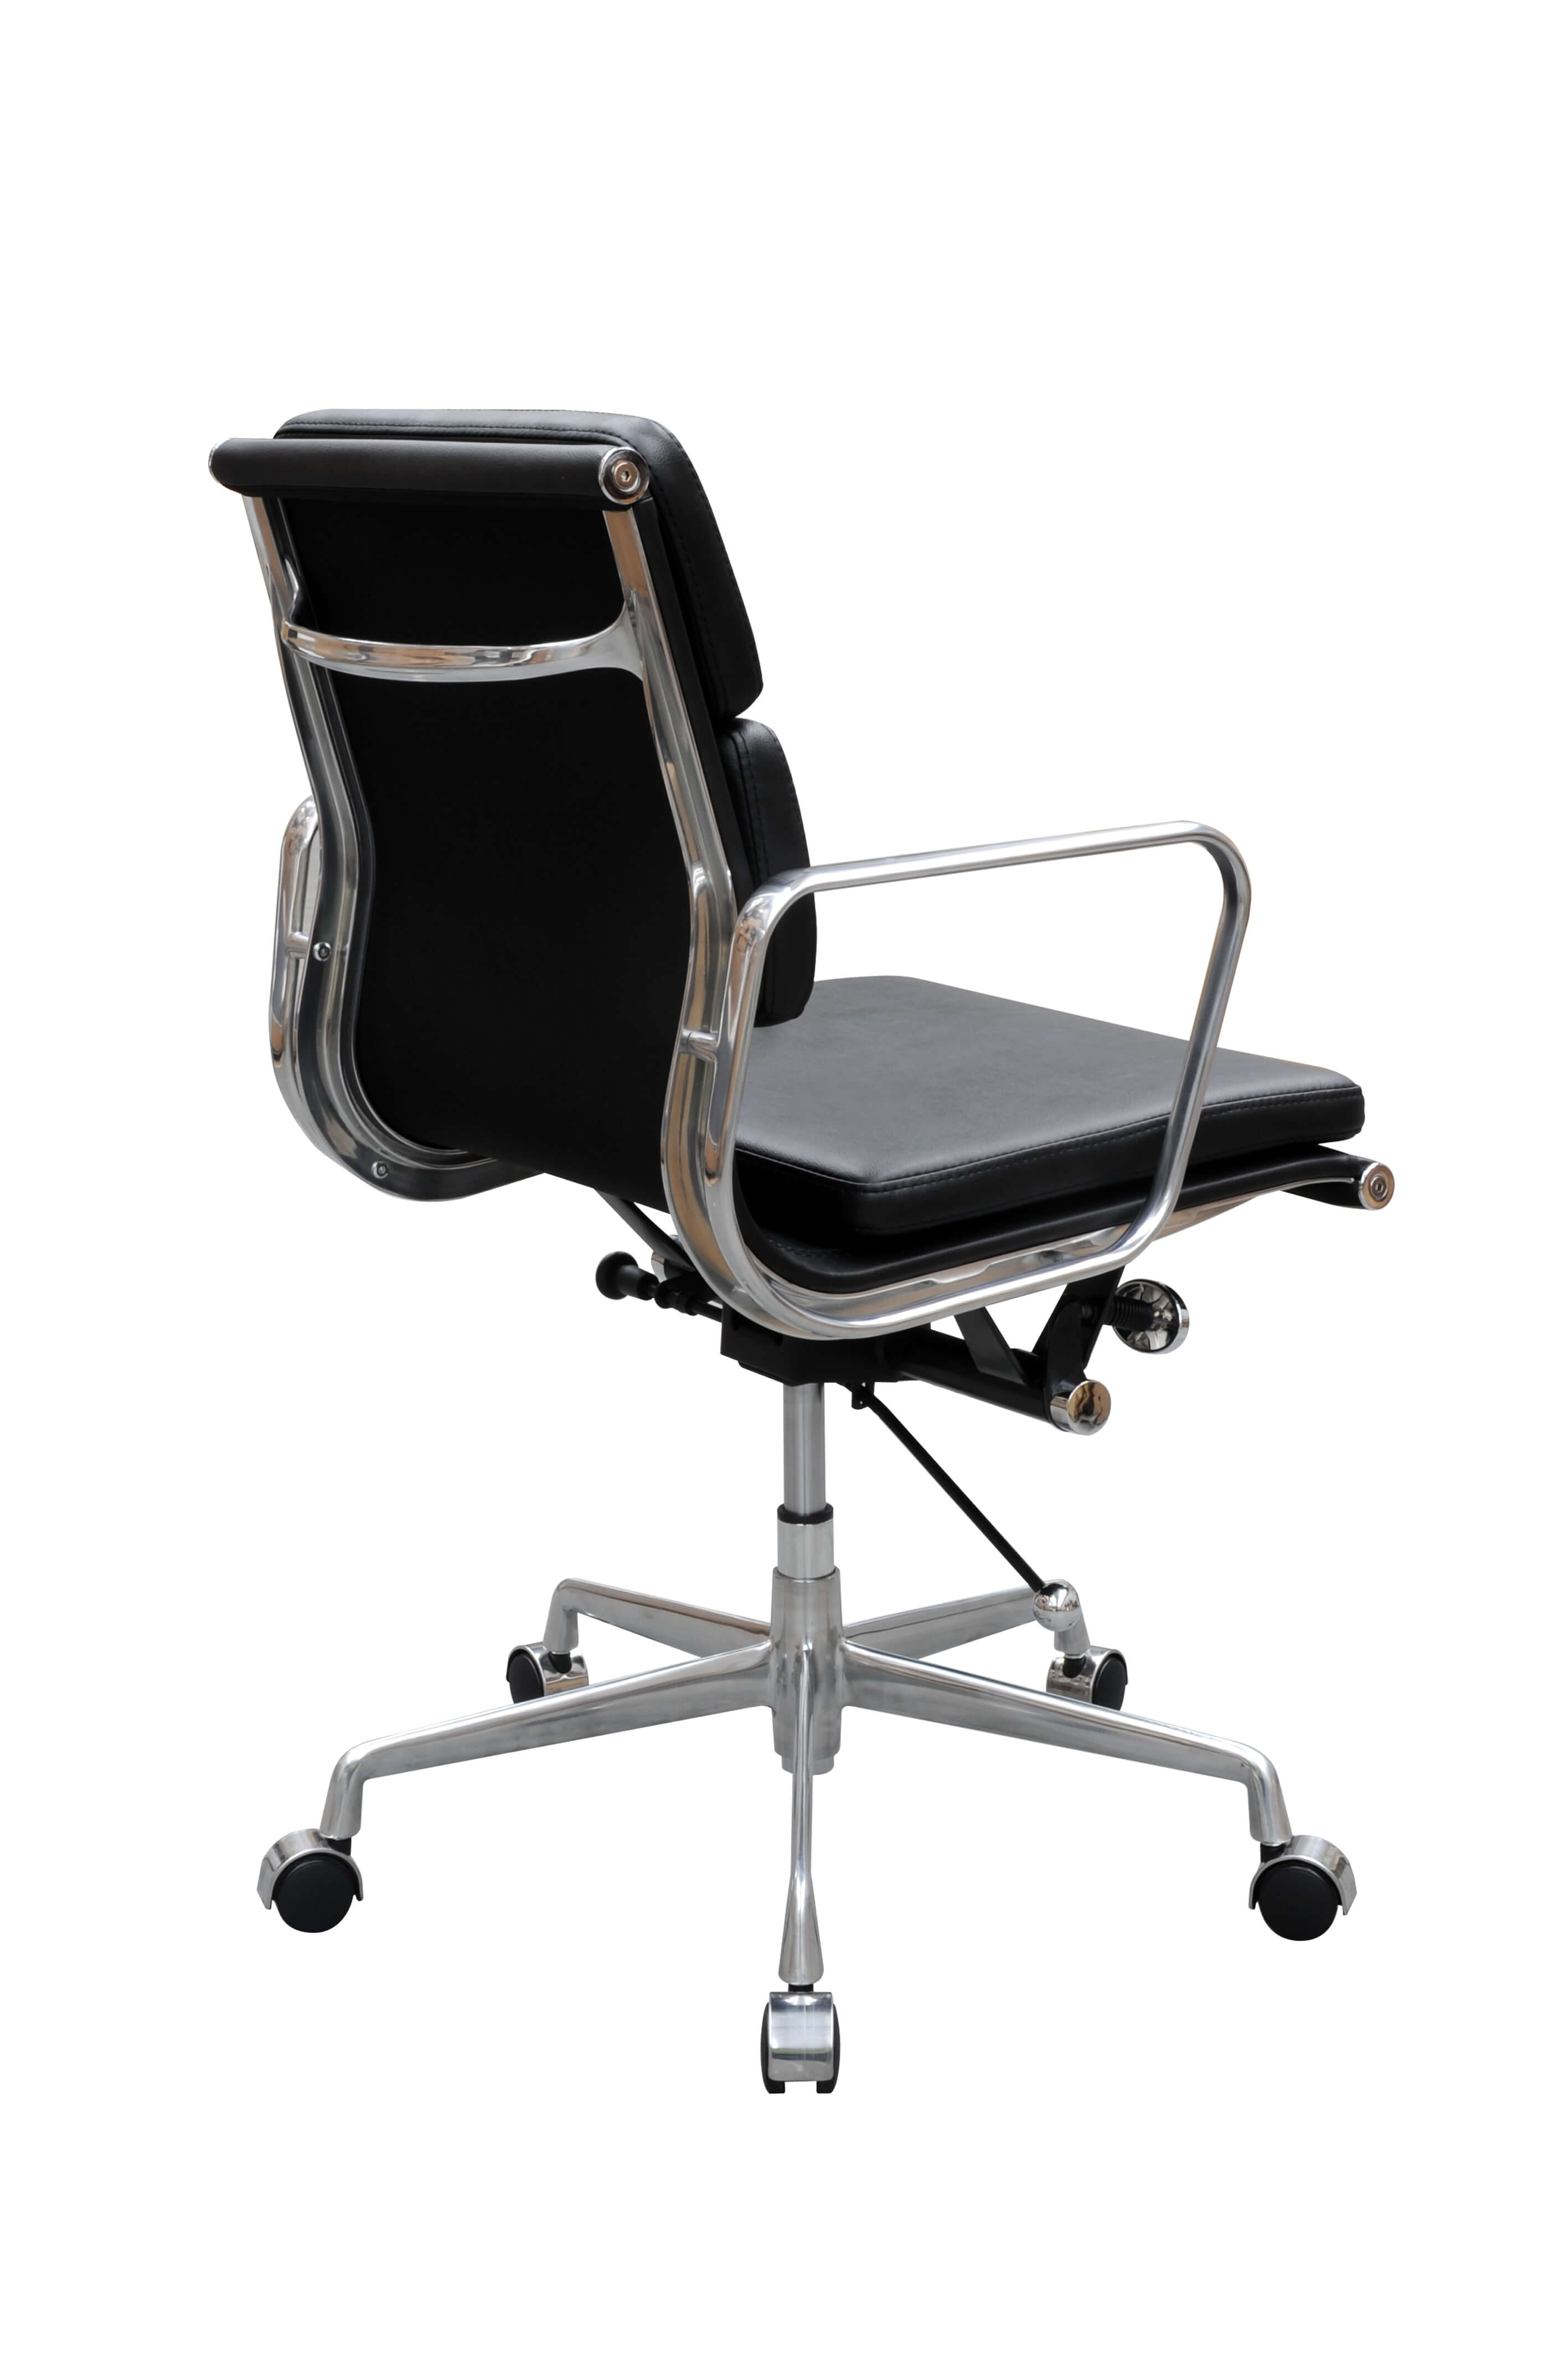 Manta™ Executive Home Or Office Leather Chair - KiPP